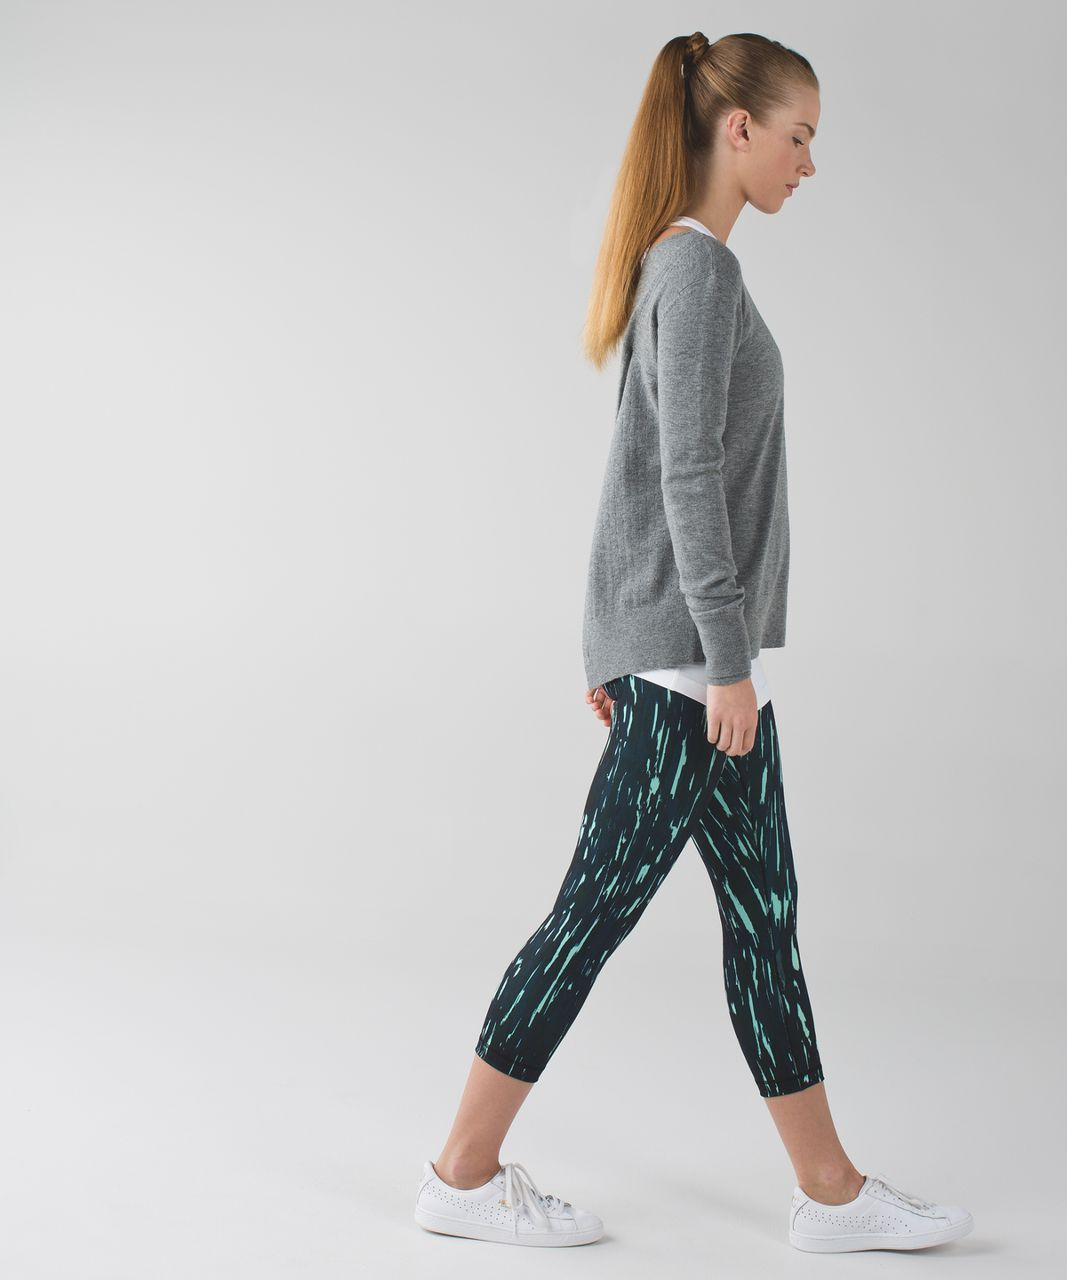 Lululemon Wunder Under Crop III - Painted Animal Menthol Black